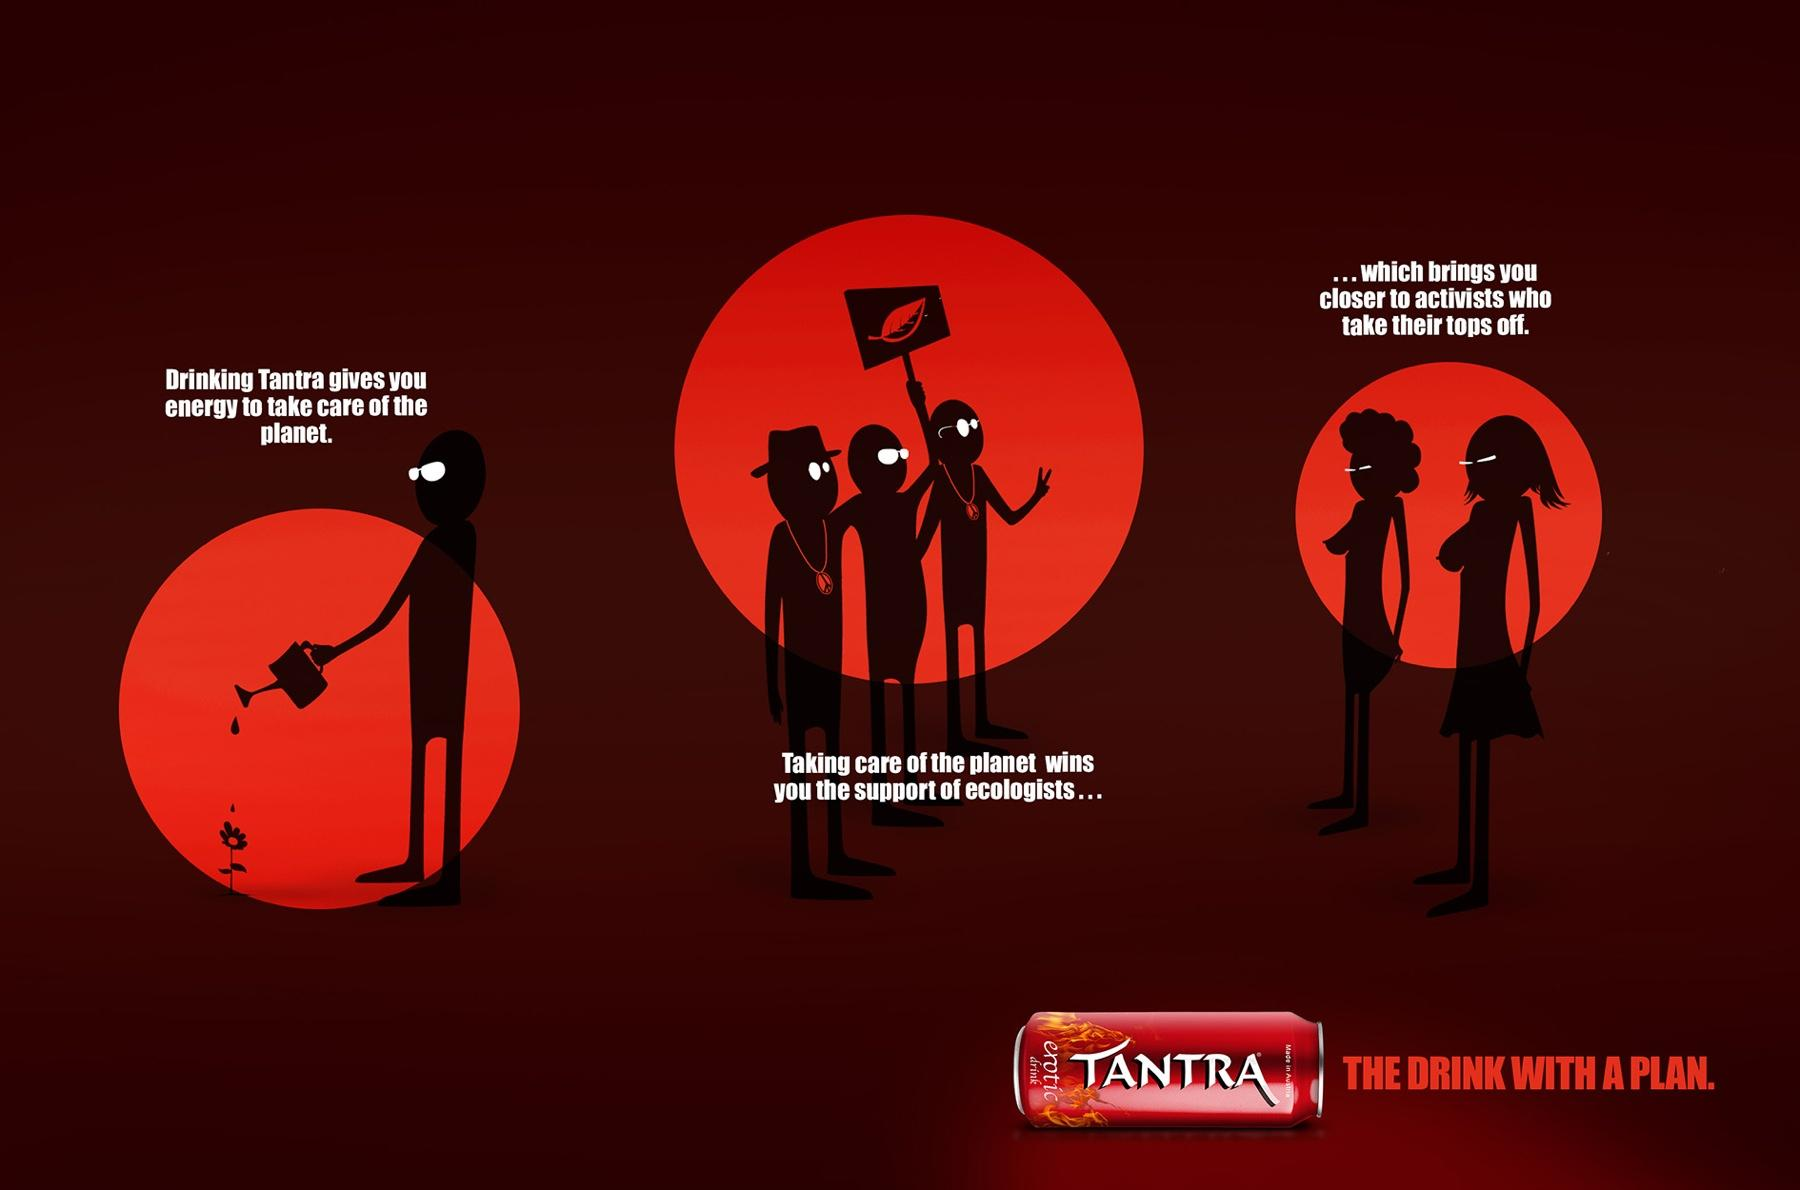 Tantra Erotic Drink Print Ad -  The drink with a plan, 1